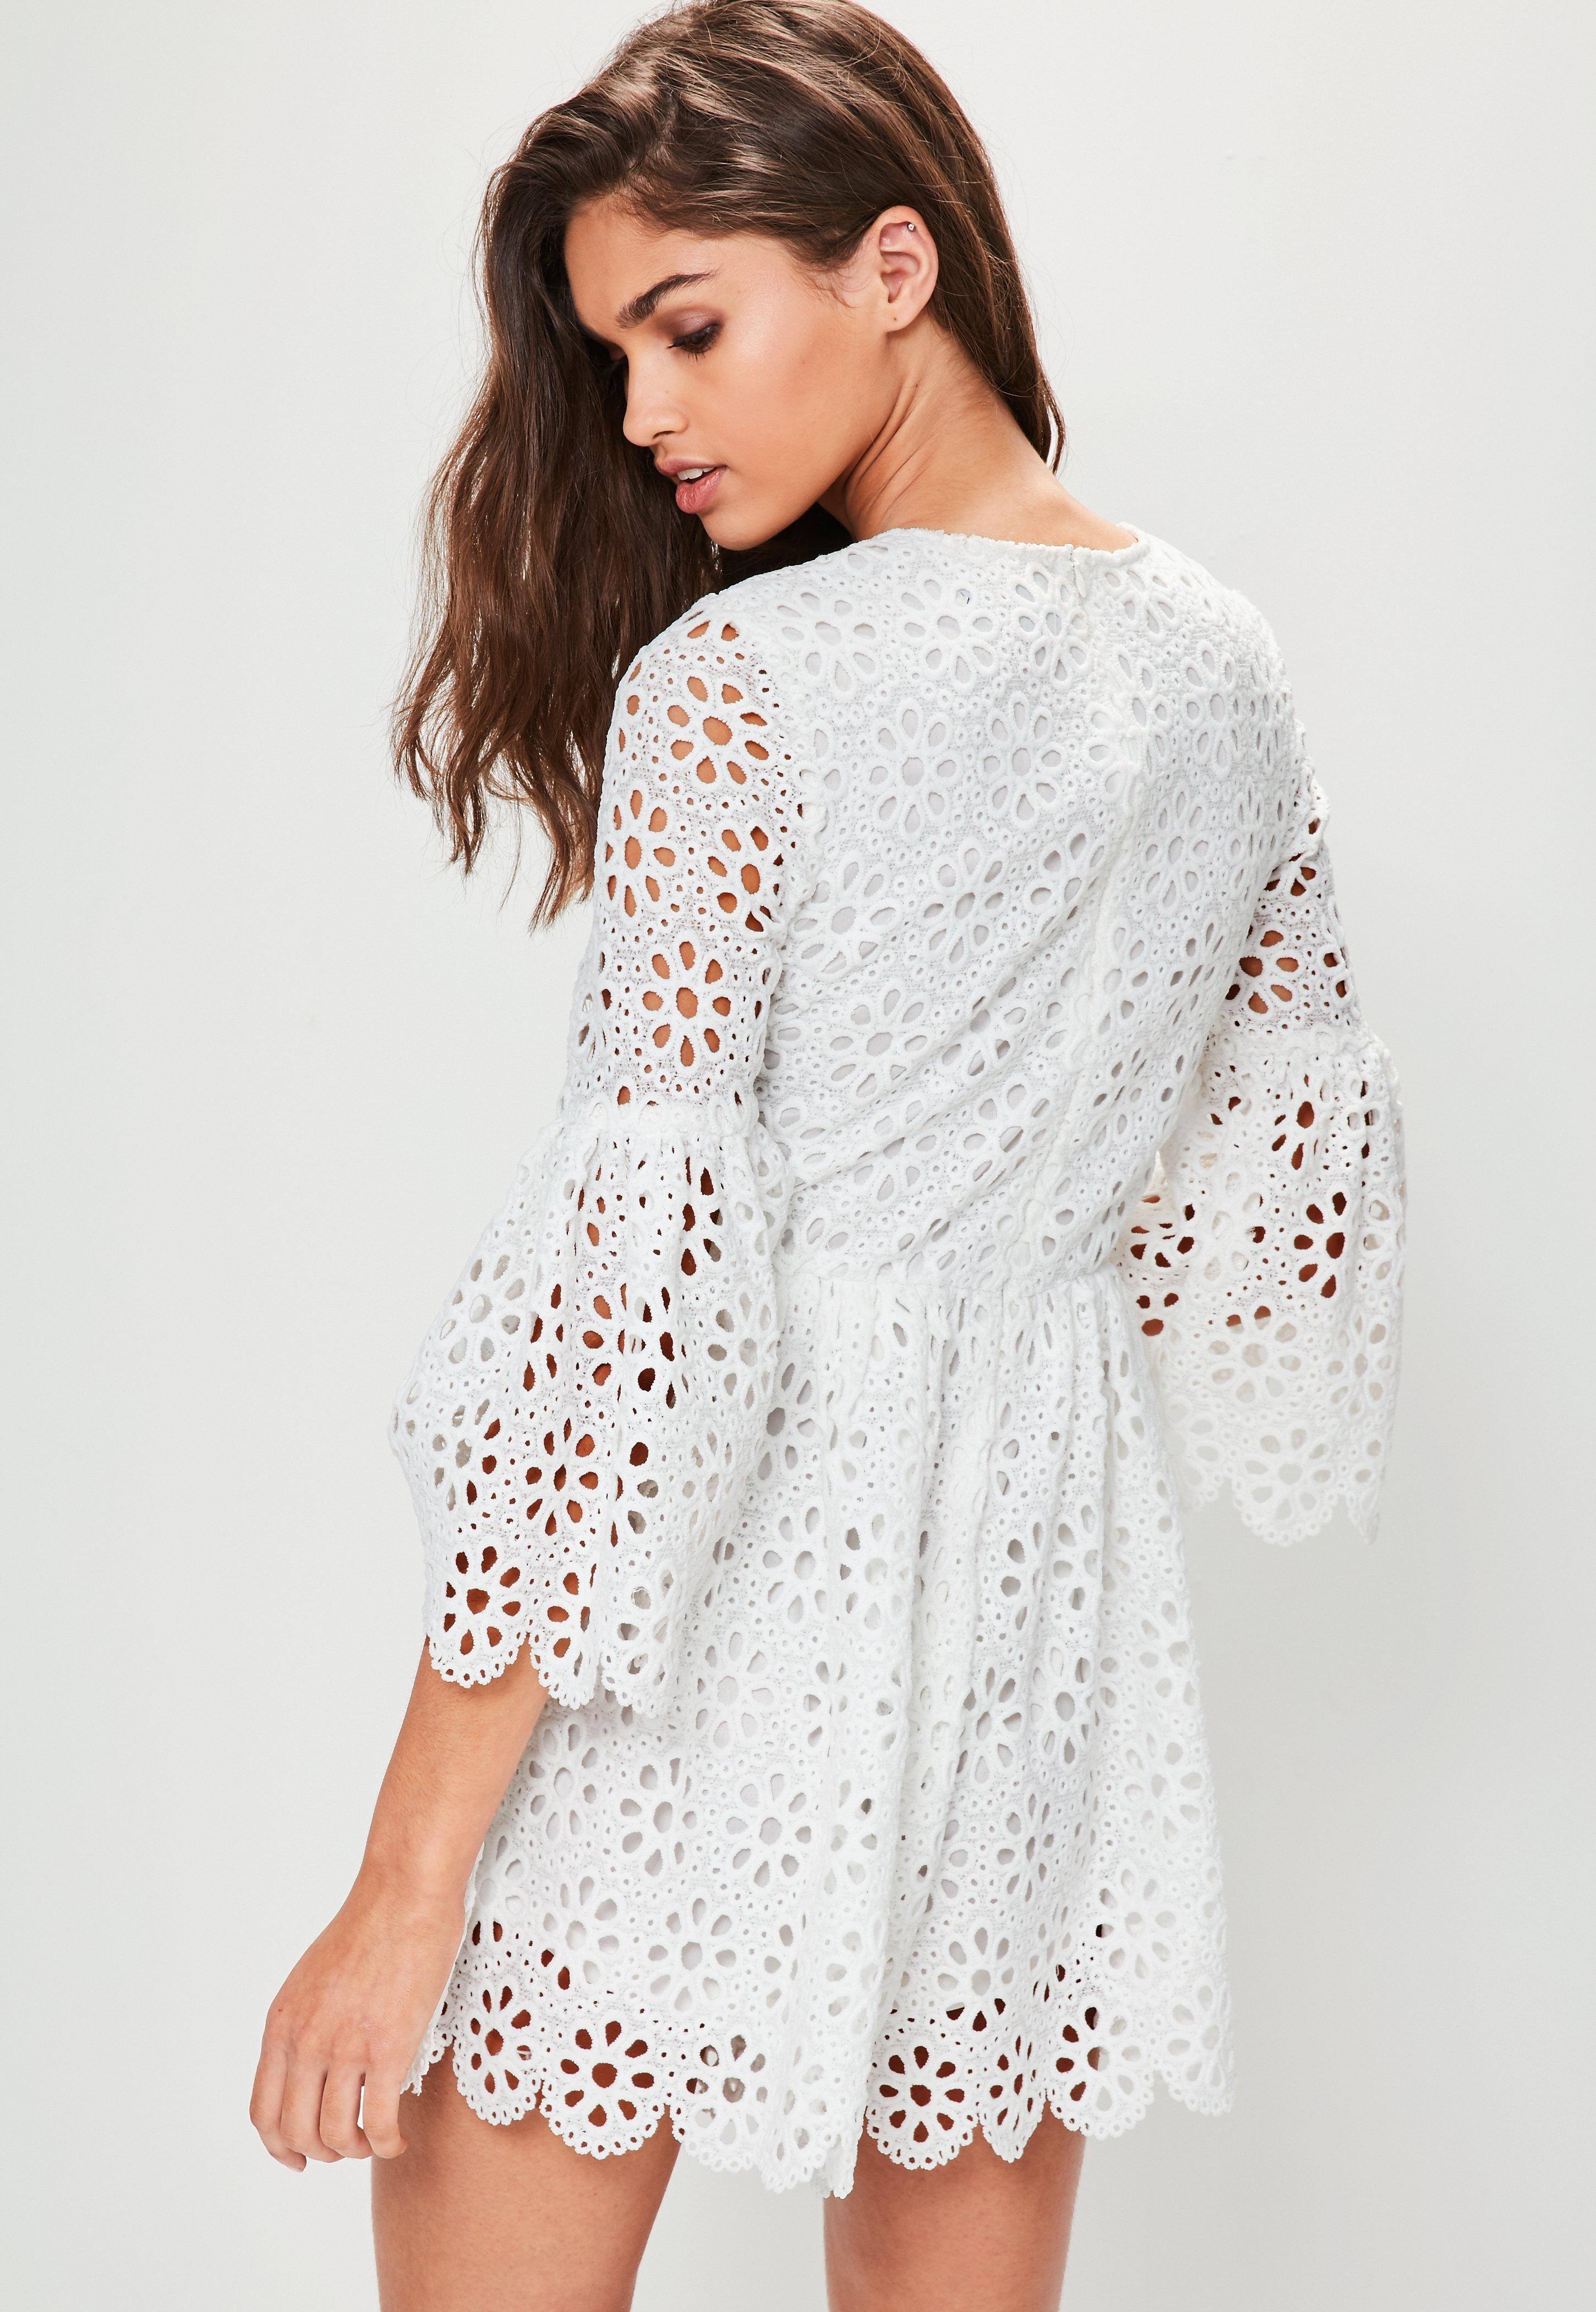 01abd43c70e85 Lyst - Missguided White Crochet Lace Flared Sleeve Playsuit in White